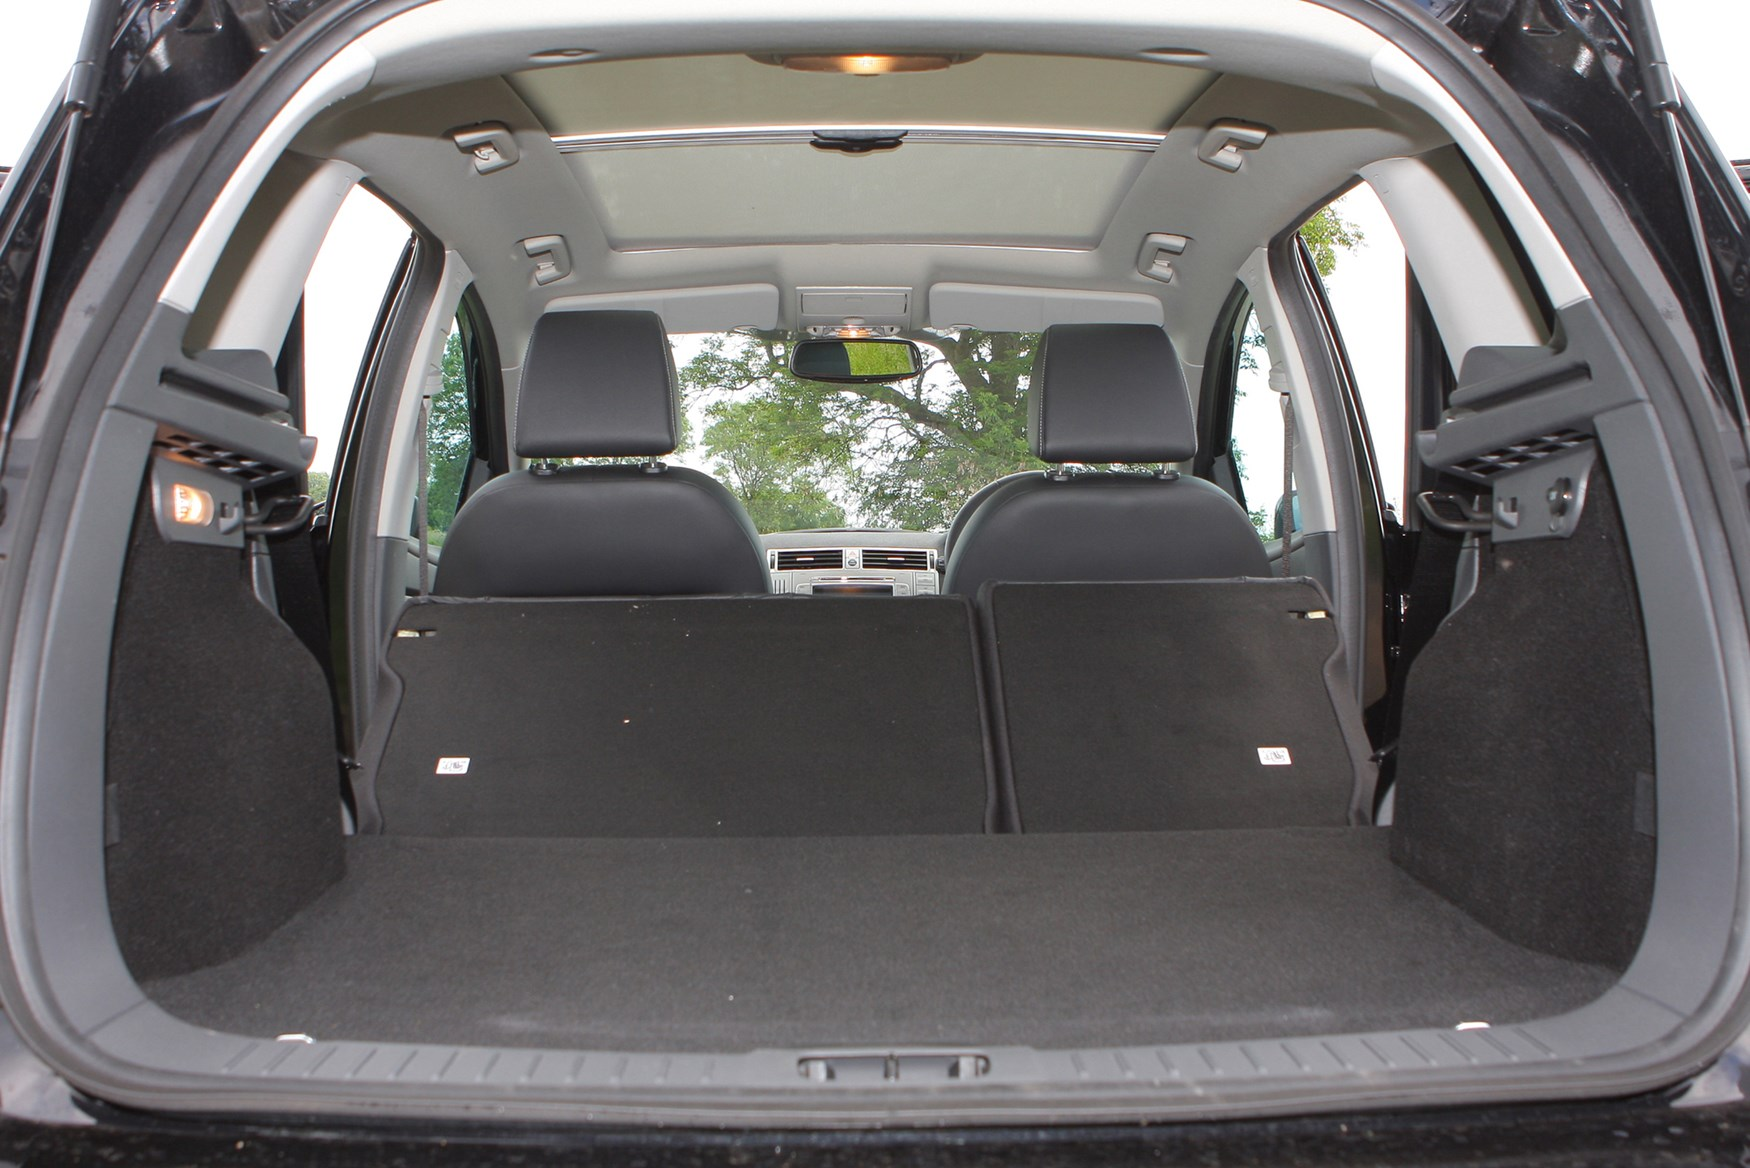 Image Result For Ford Kuga Load Space